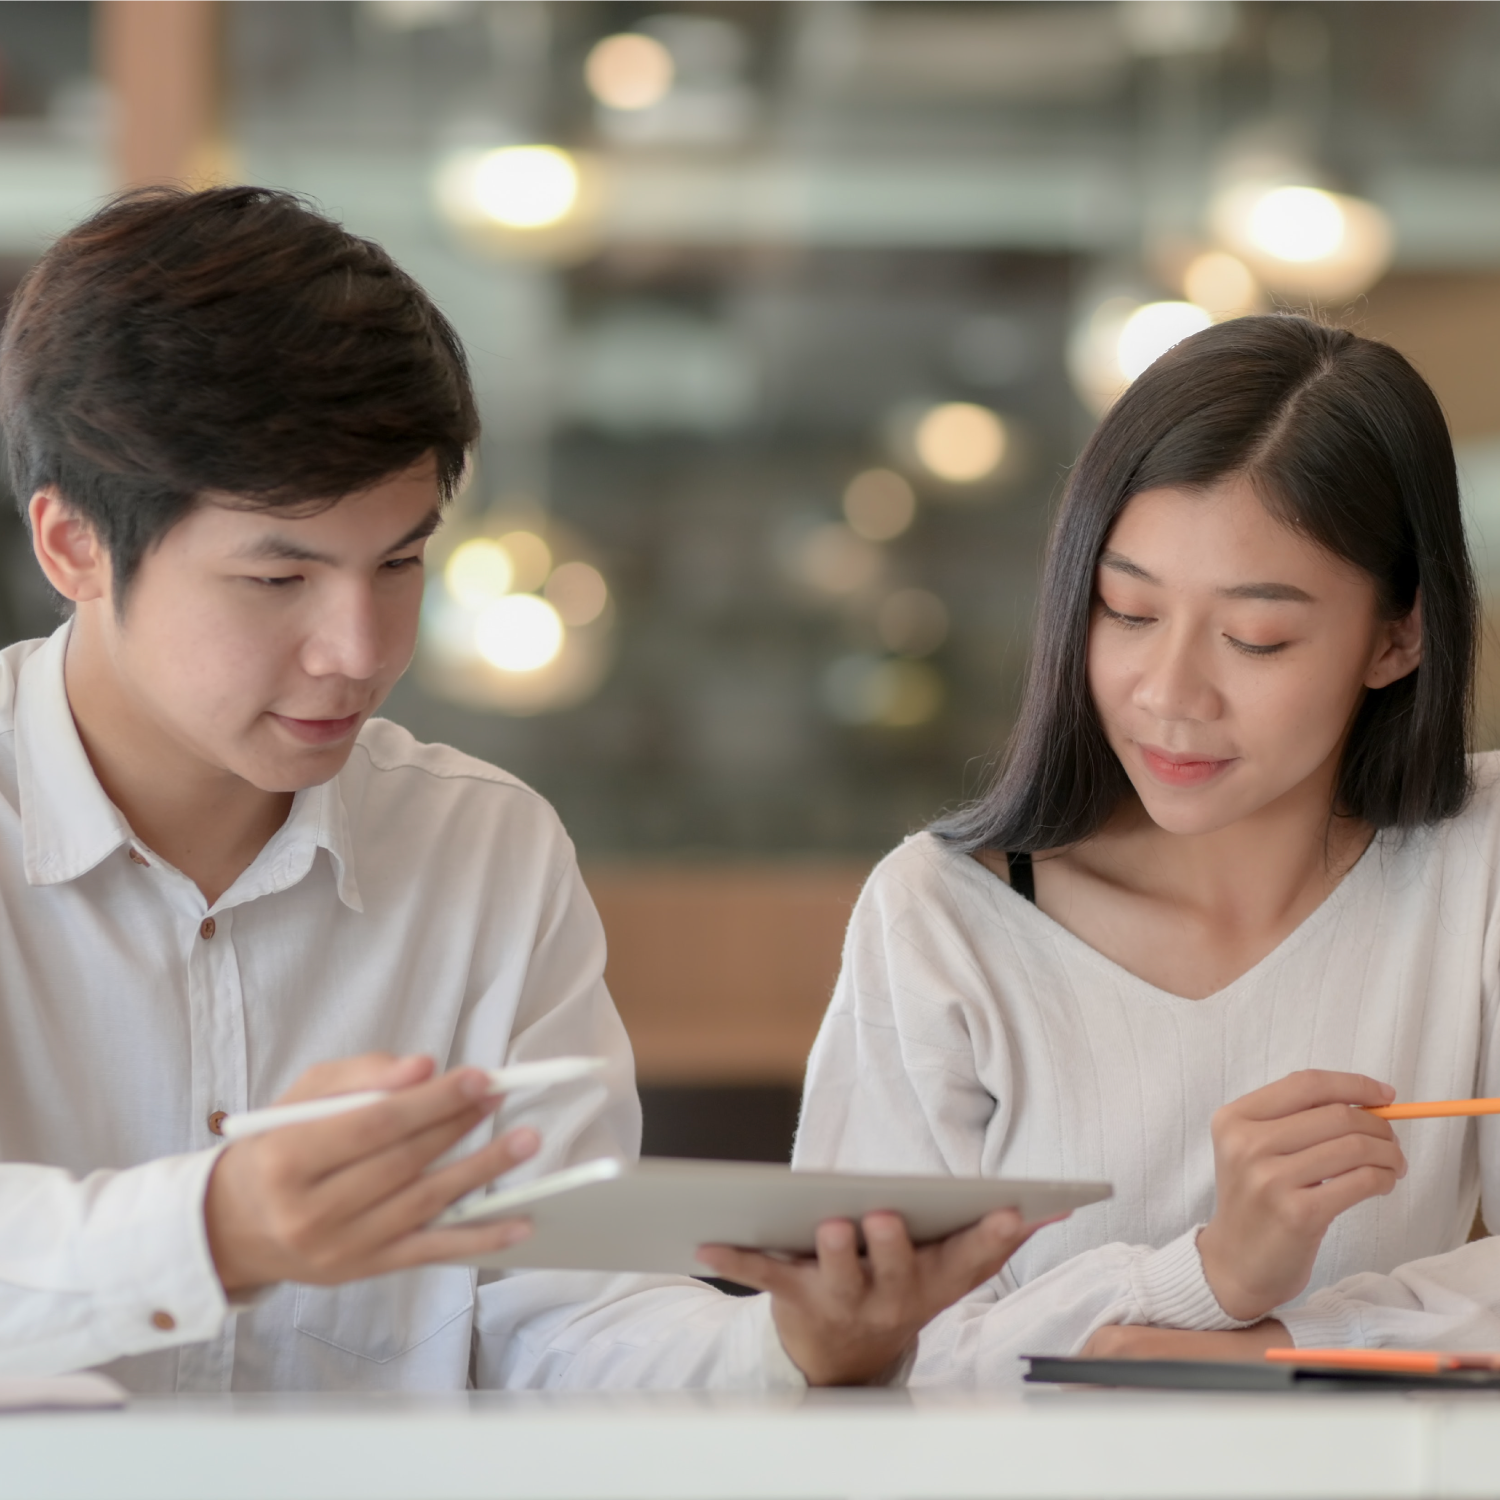 Asian Couple Working In a cafe holding orange pen